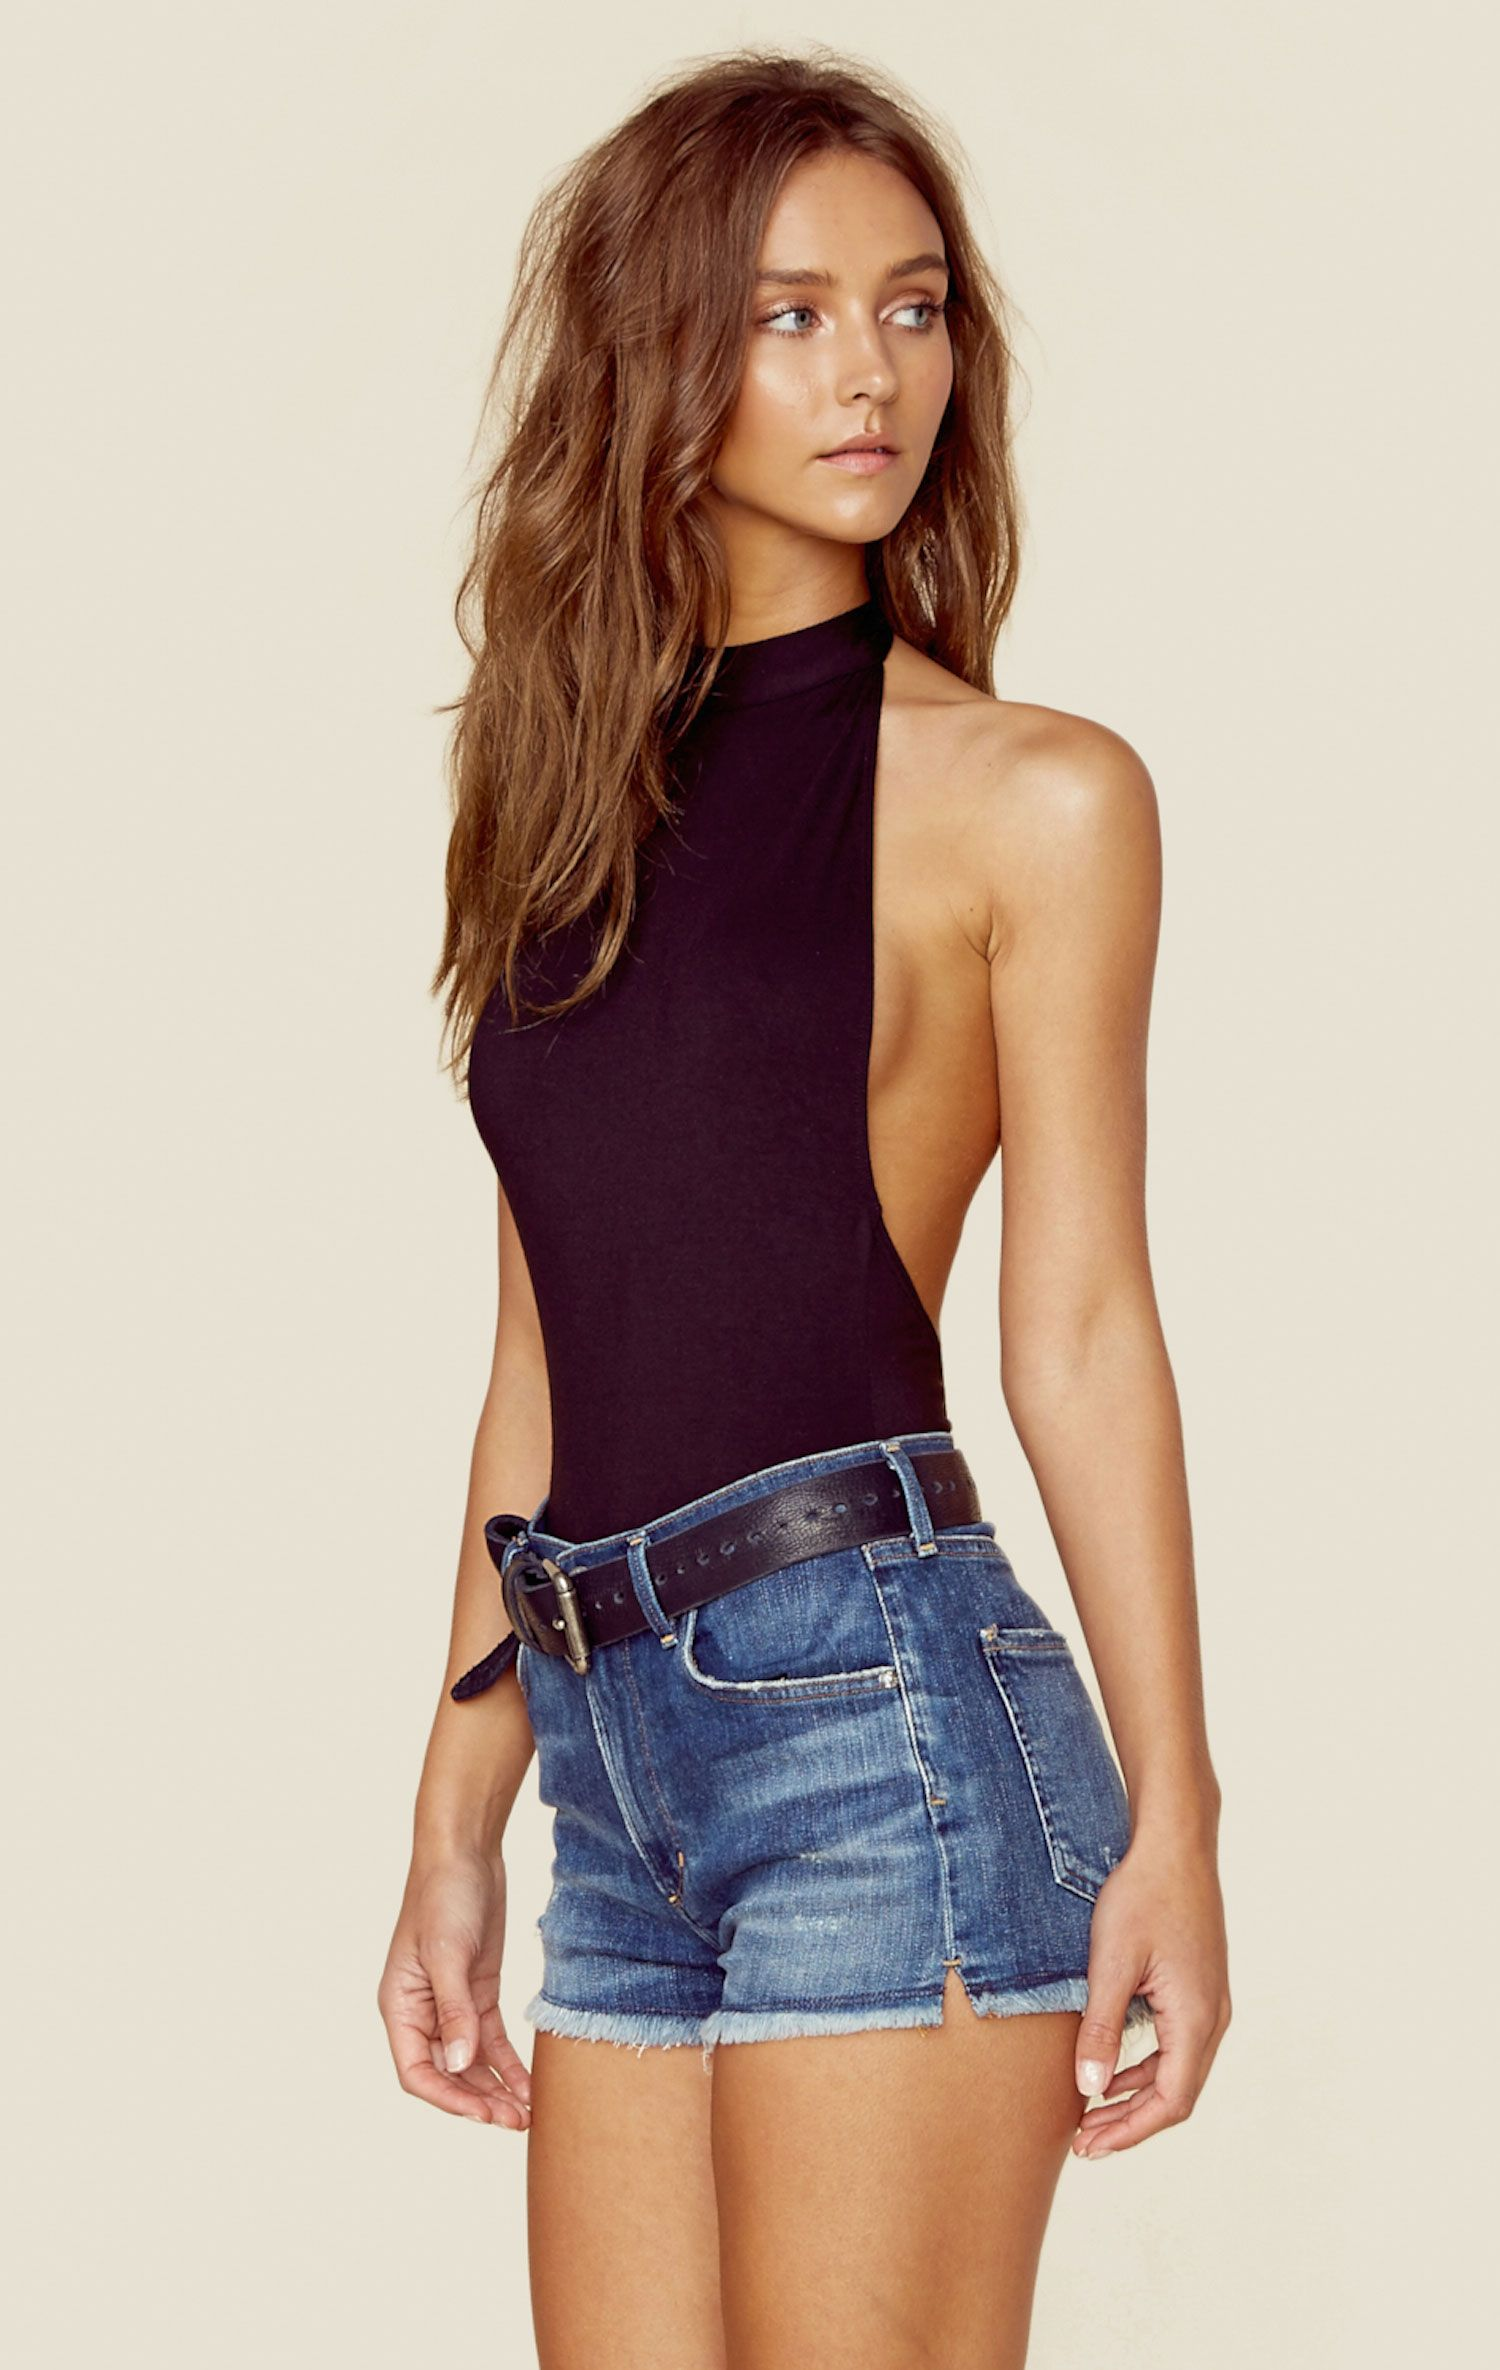 99c40b2f36 The Dancing Days Bodysuit features a super chic mock turtleneck with open  back and cheeky bottom.Made in USAMachine Wash ColdSpandex ModalFit  Guide Model is ...